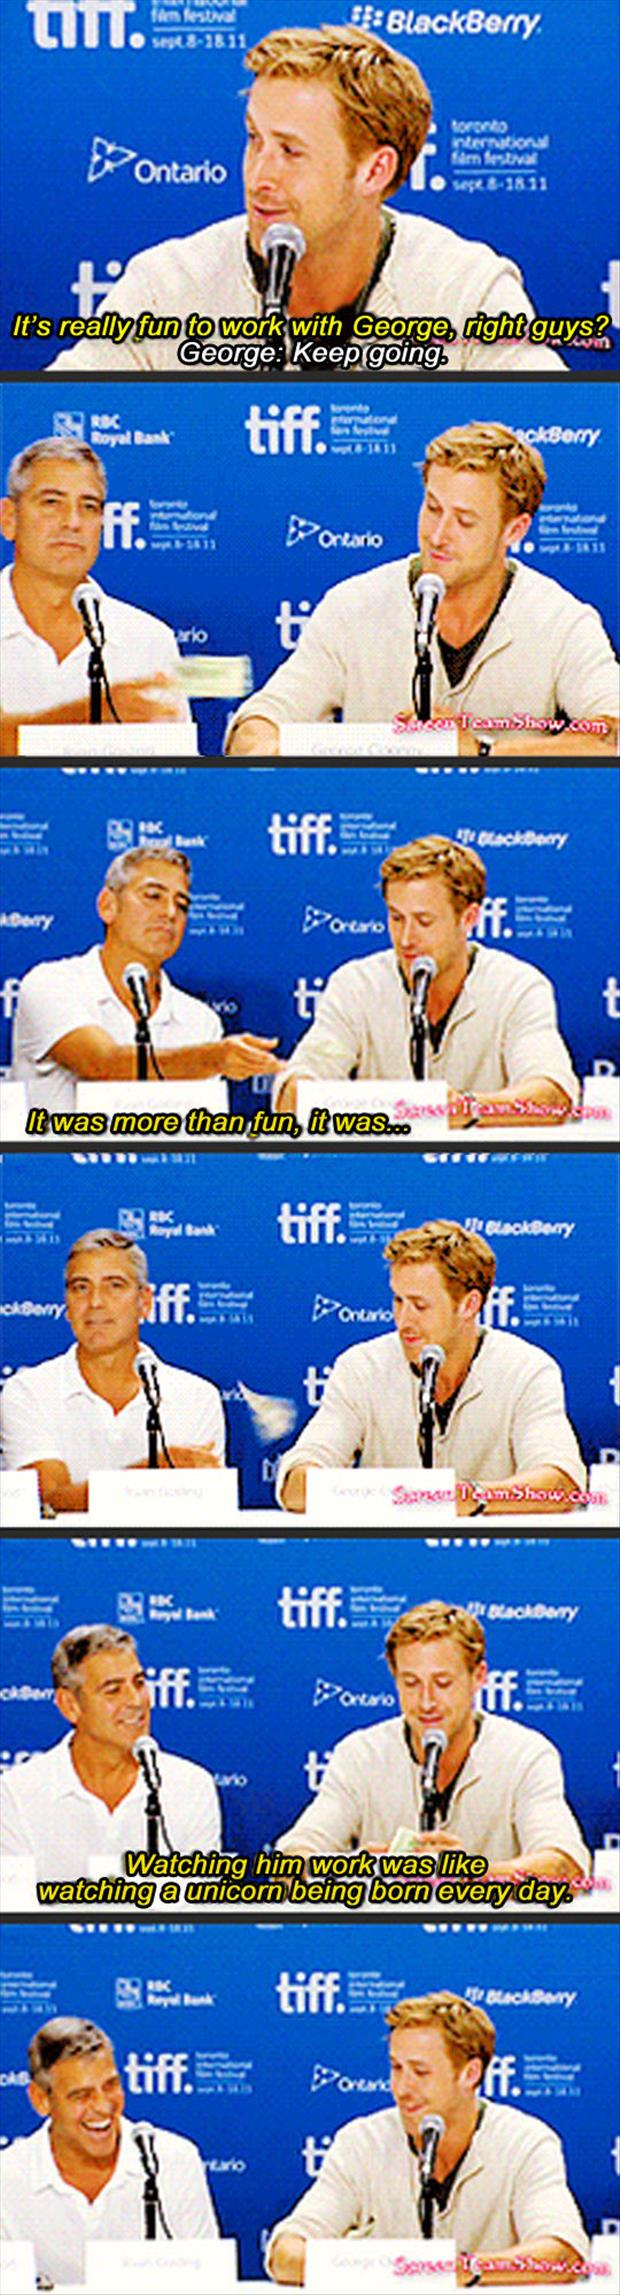 george-clooney-and-ryan-gosling-funny-interview.jpg